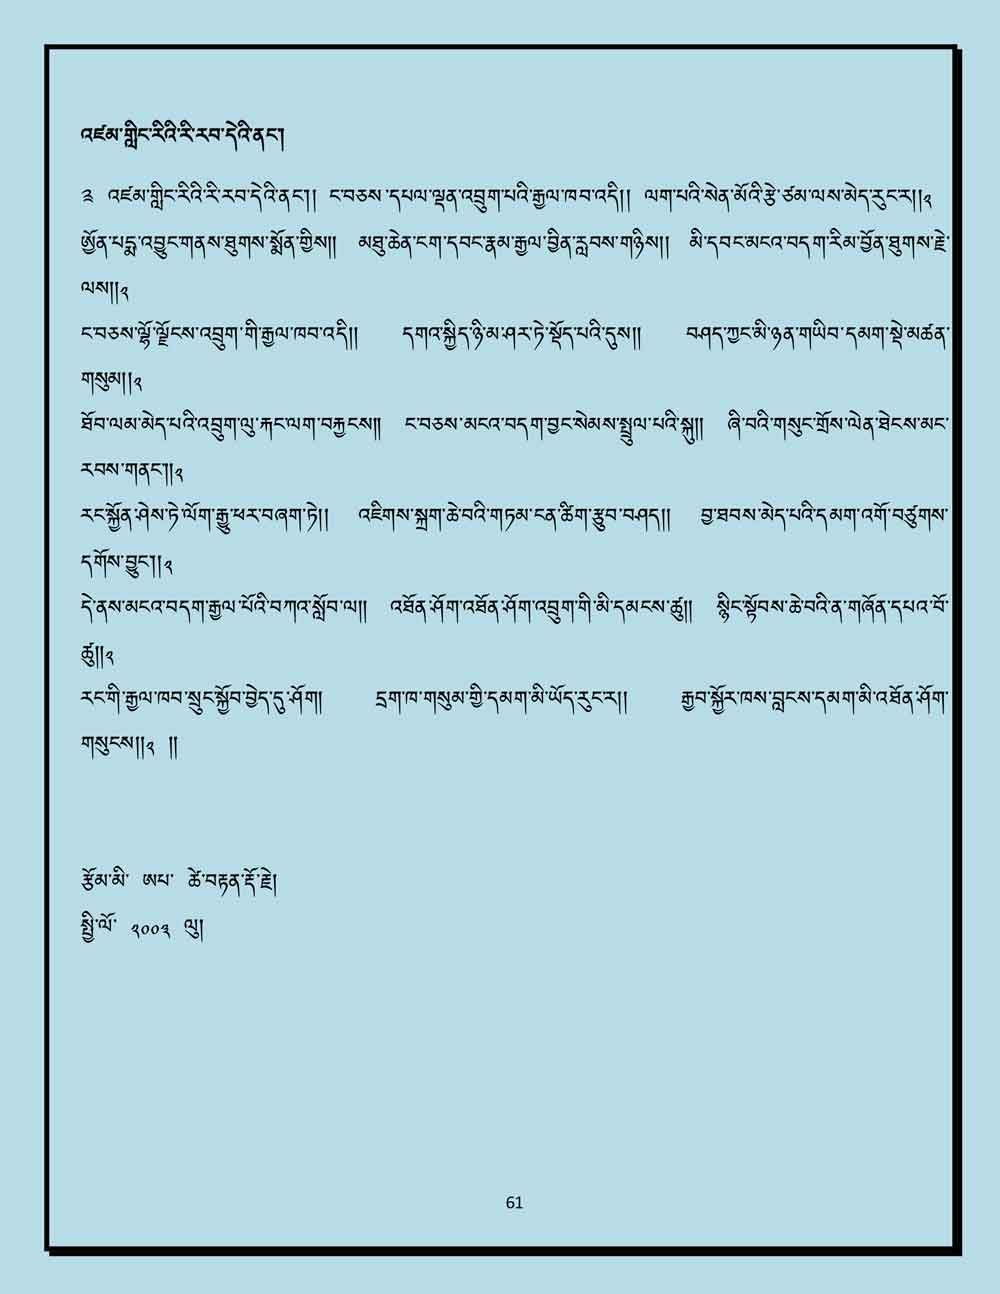 Ap-Tseten-Lyrics-61.jpg